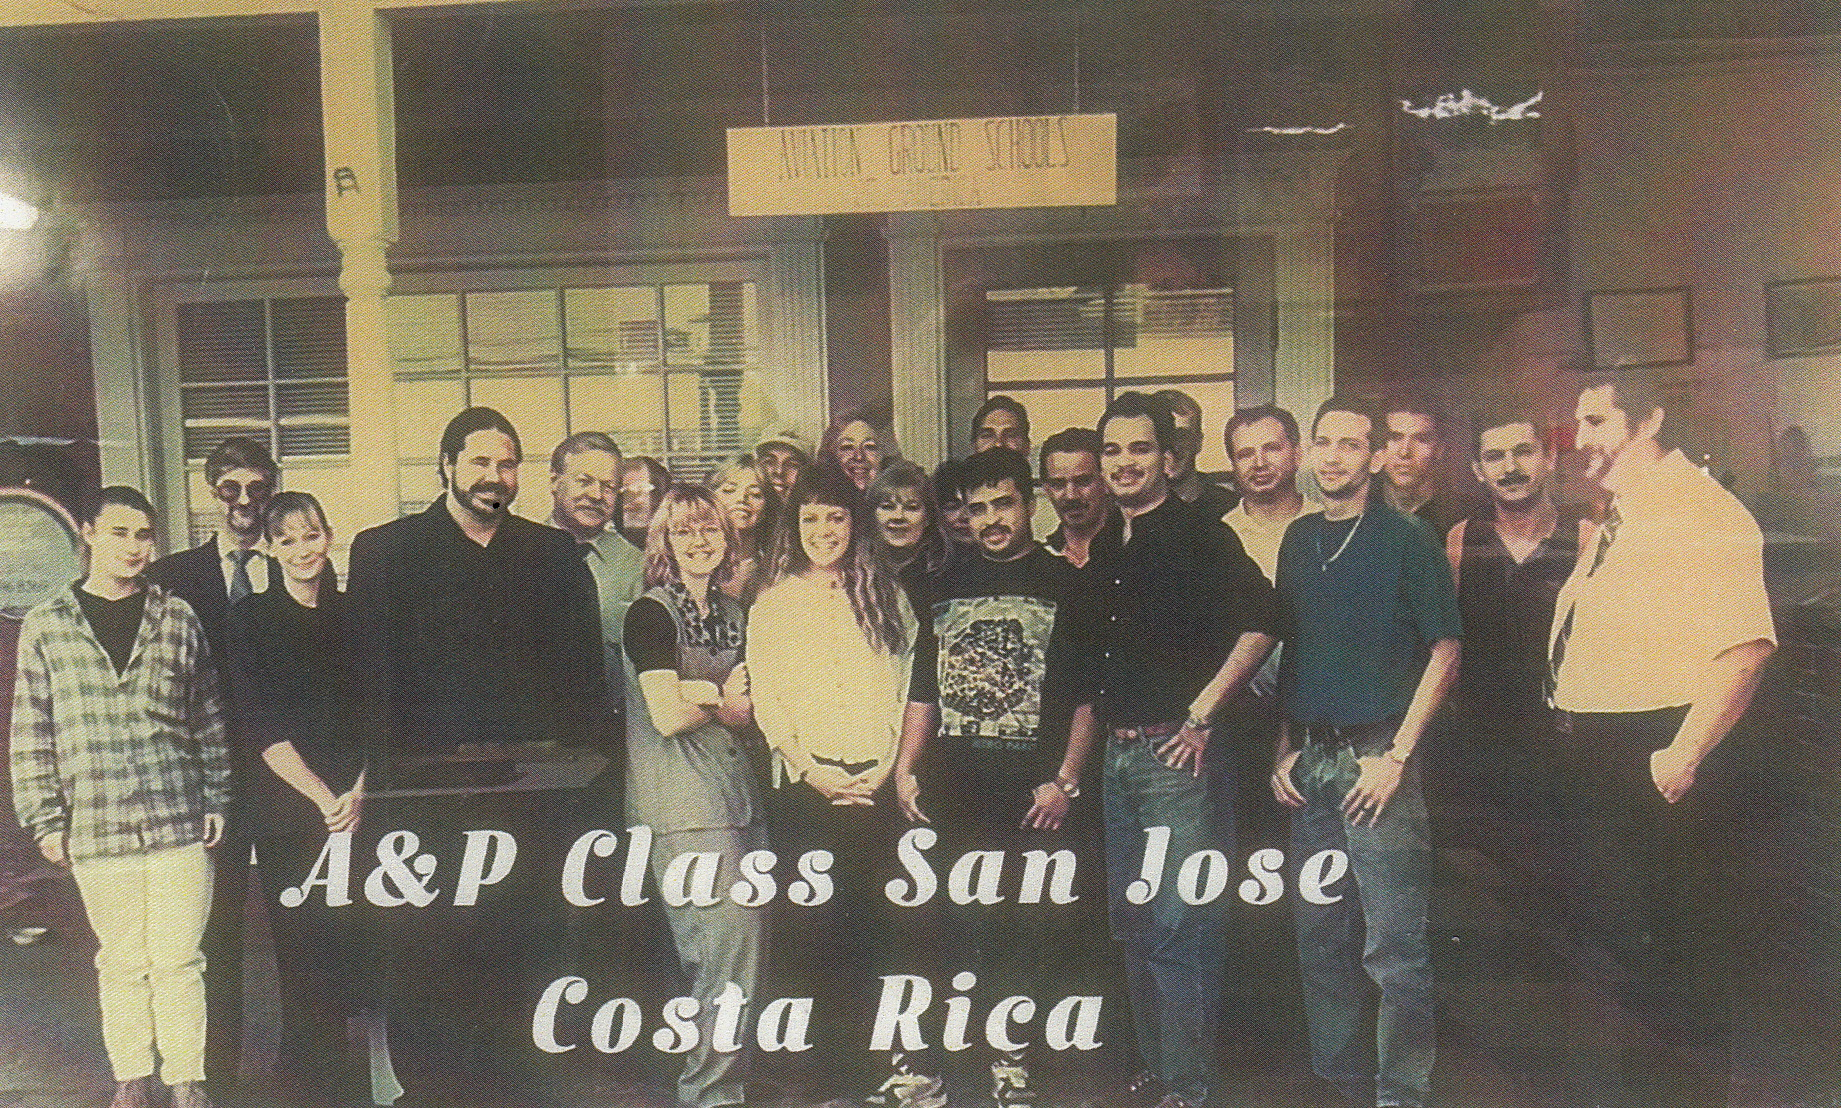 A&P course in San Jose, Costa Rica